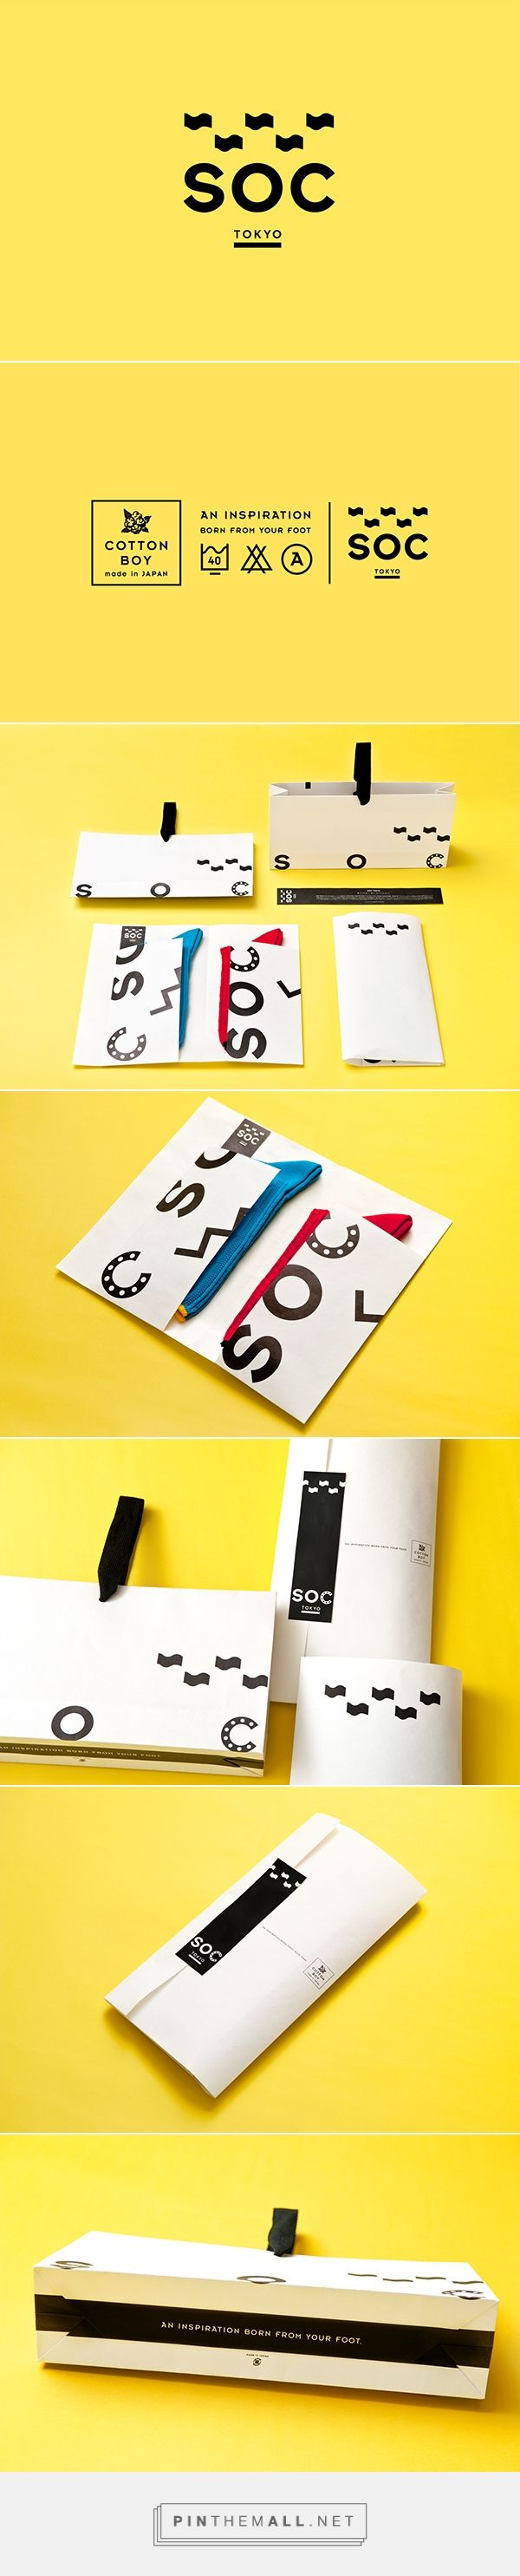 SOC TOKYO on Packaging Design Served by Keiko Akatsuka curated by Packaging PD. The packaging has been designed so that it is able to contain socks of all sizes and display the different styles, and was created according to the art of traditional Japanese folding, so that it may be opened without destroying the packaging.